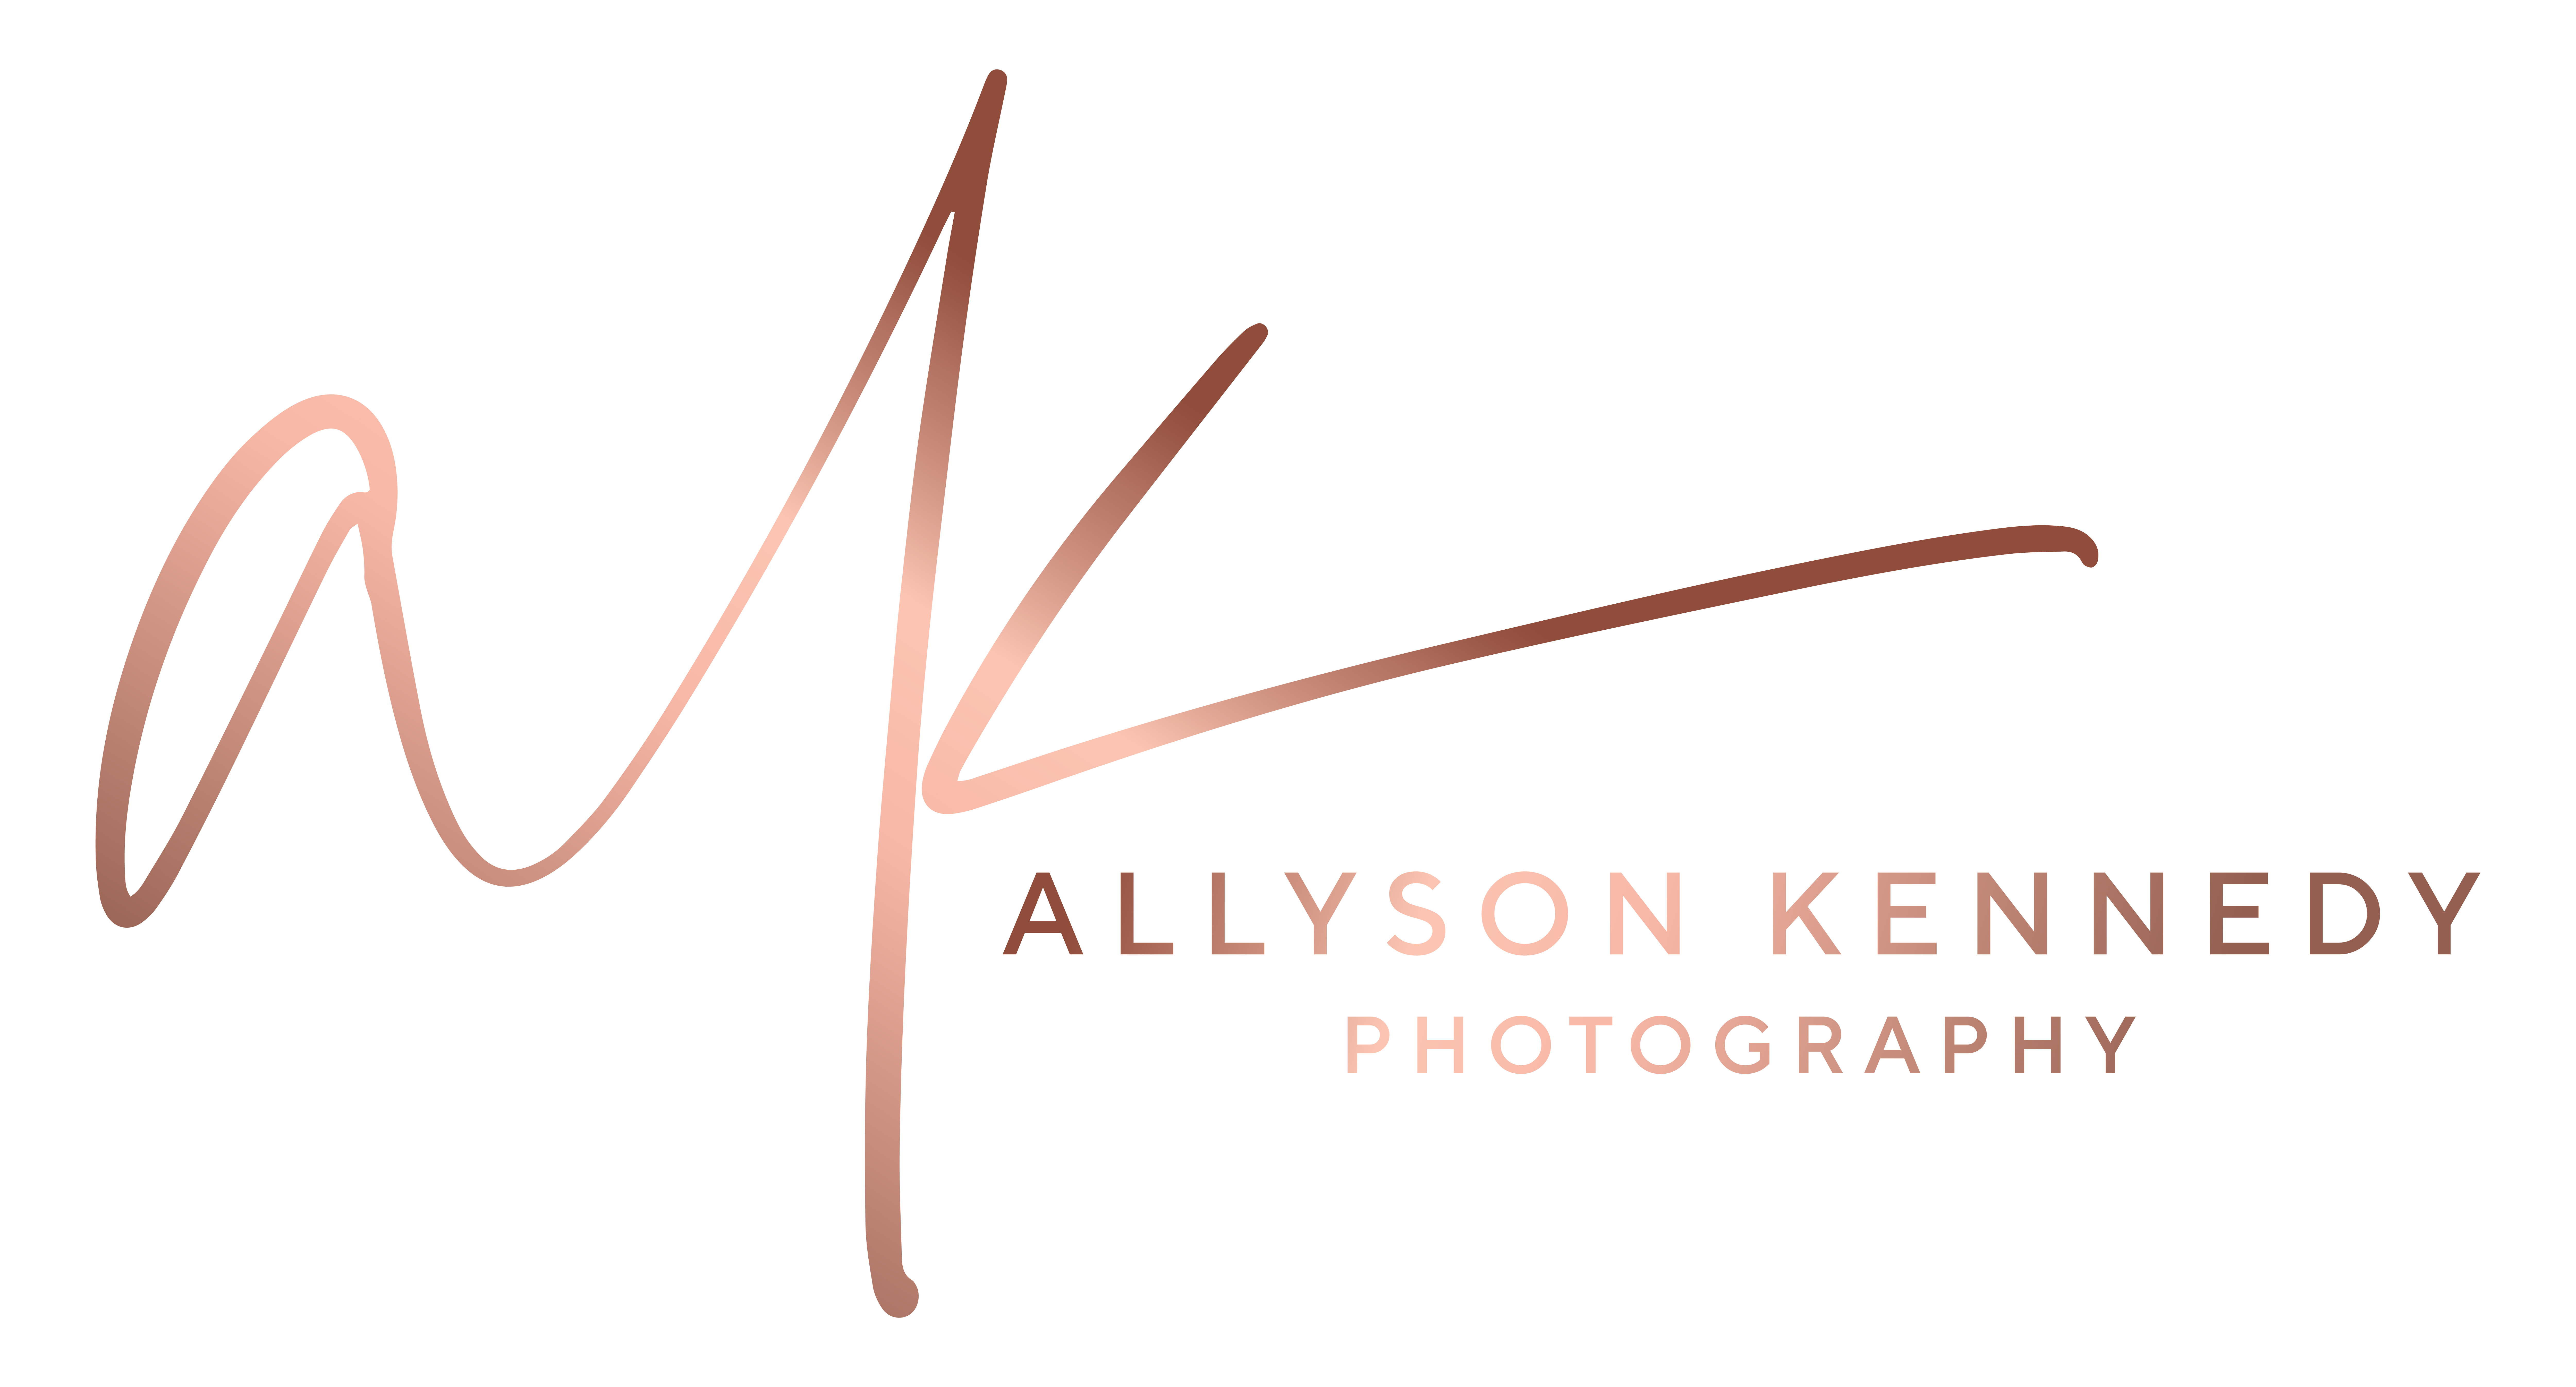 Allyson Kennedy Photography logo